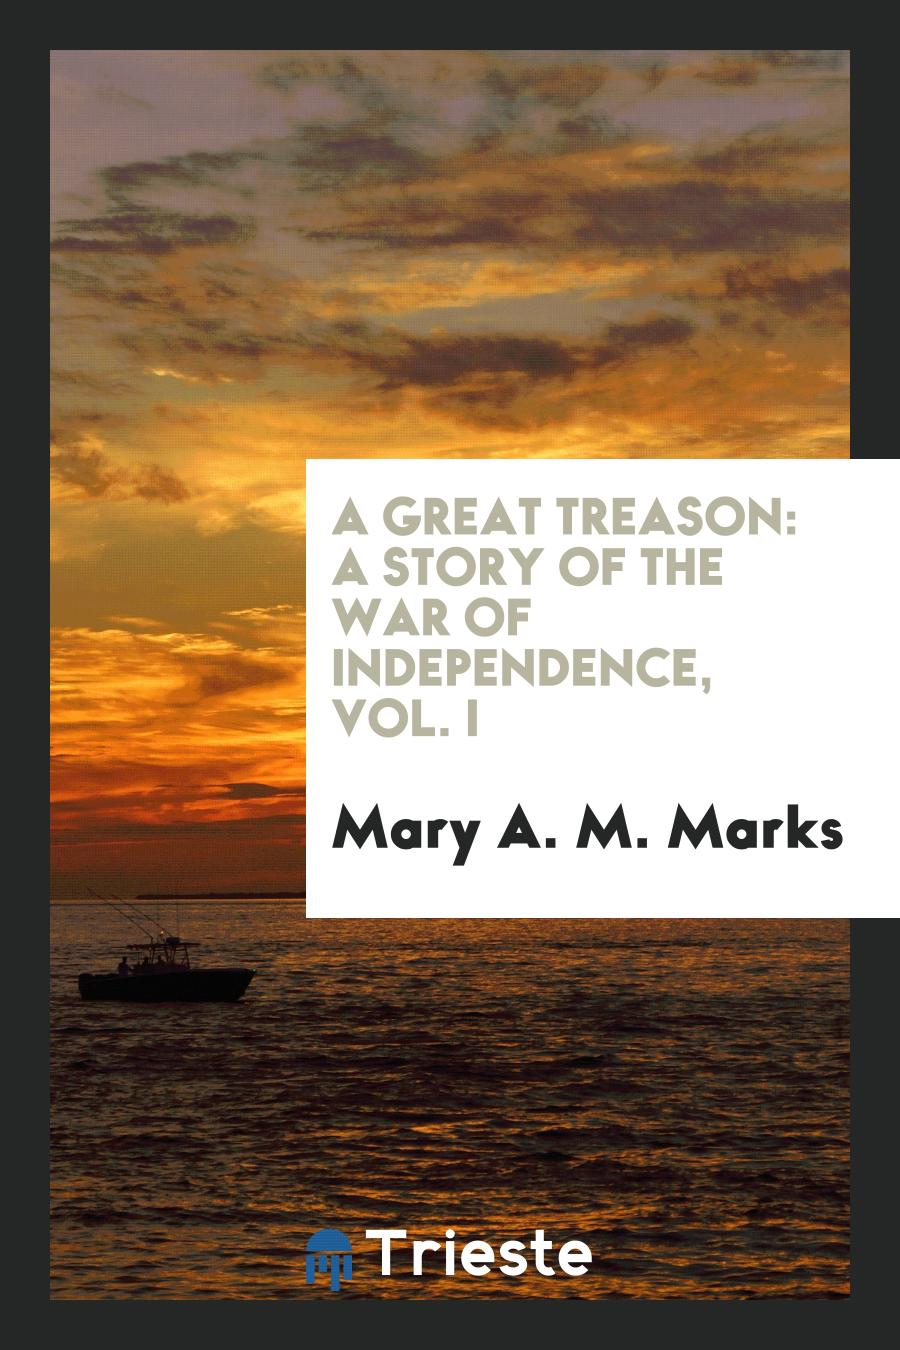 A Great Treason: A Story of the War of Independence, Vol. I